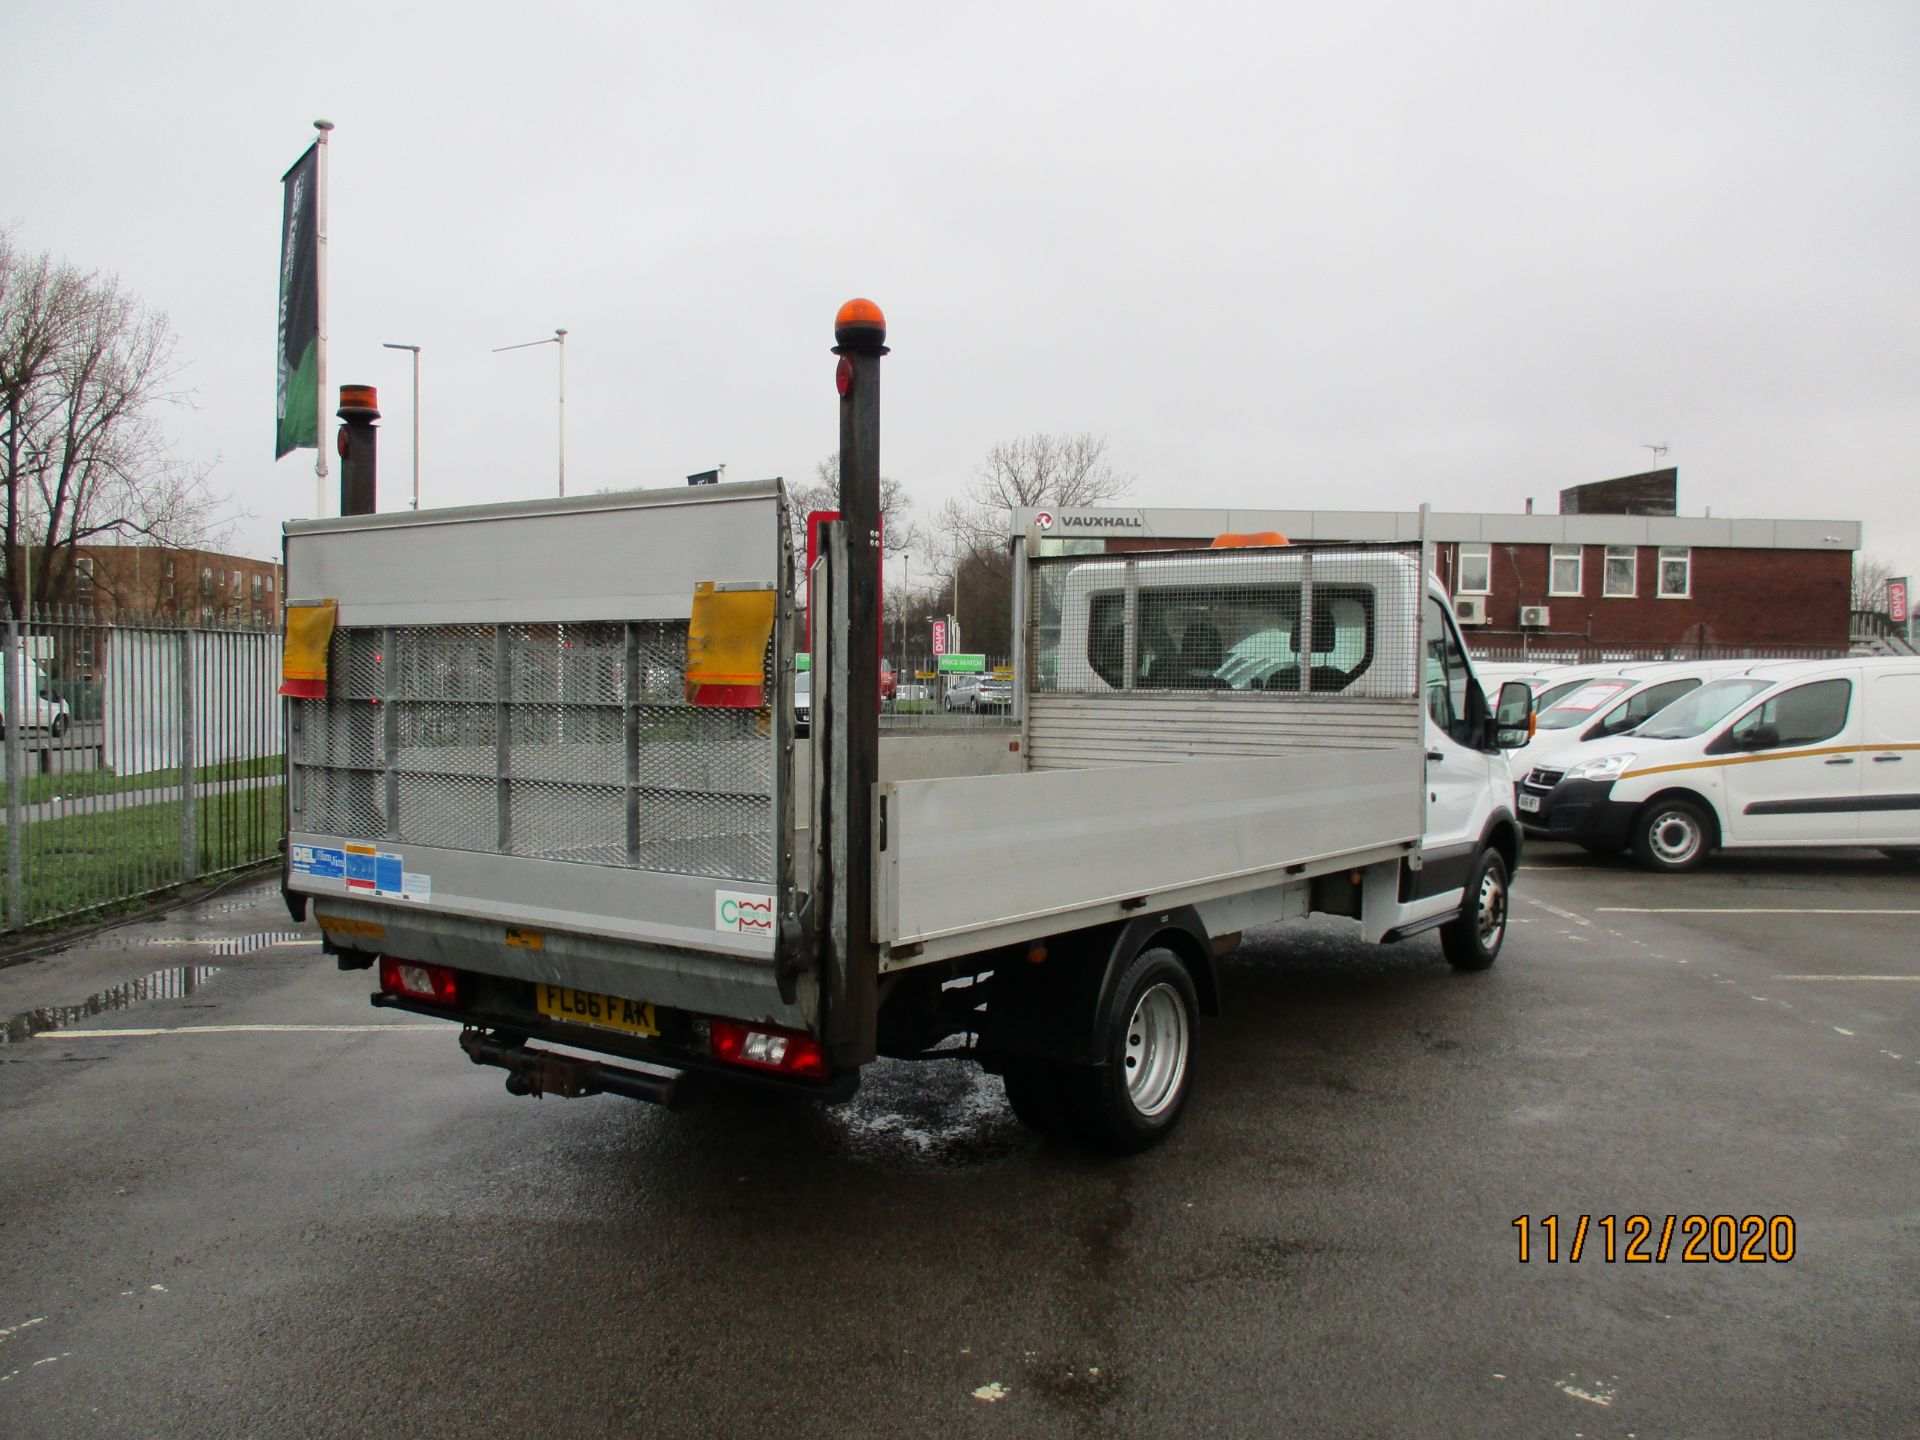 2016 Ford Transit 2.2 Tdci 125Ps Chassis Cab (FL66FAK) Image 7